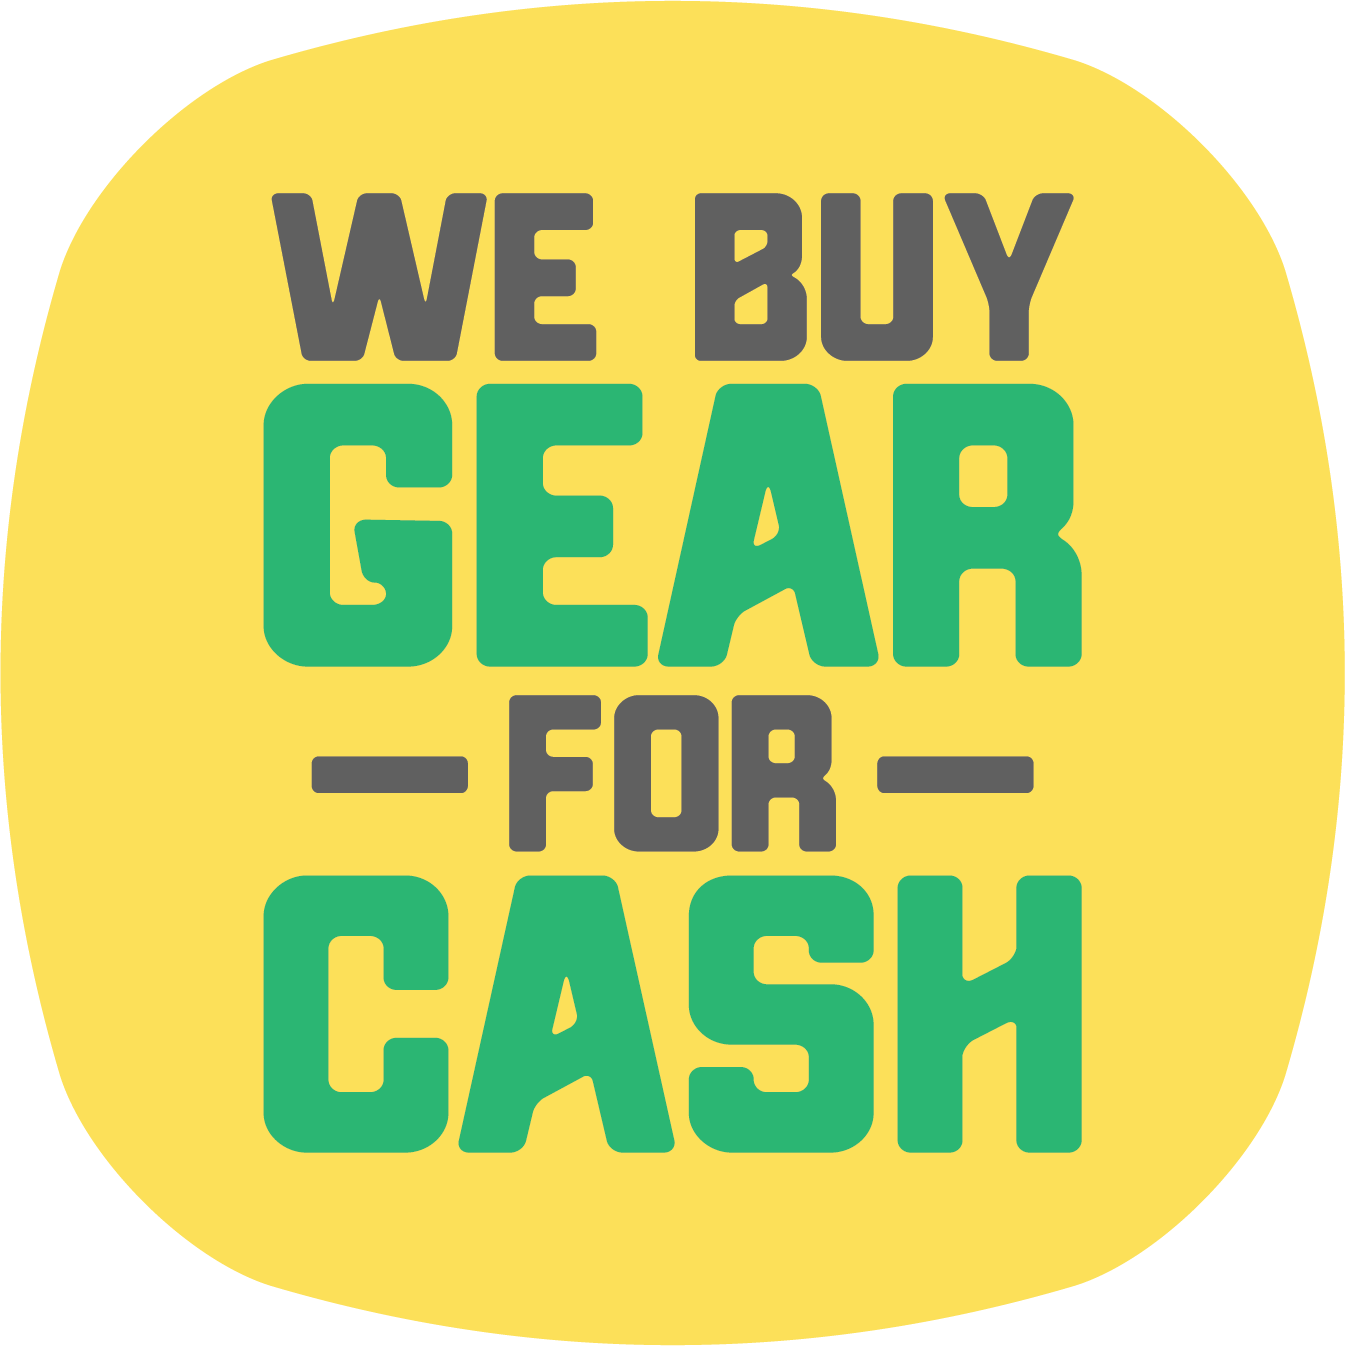 What we buy — We Buy Gear For Cash!